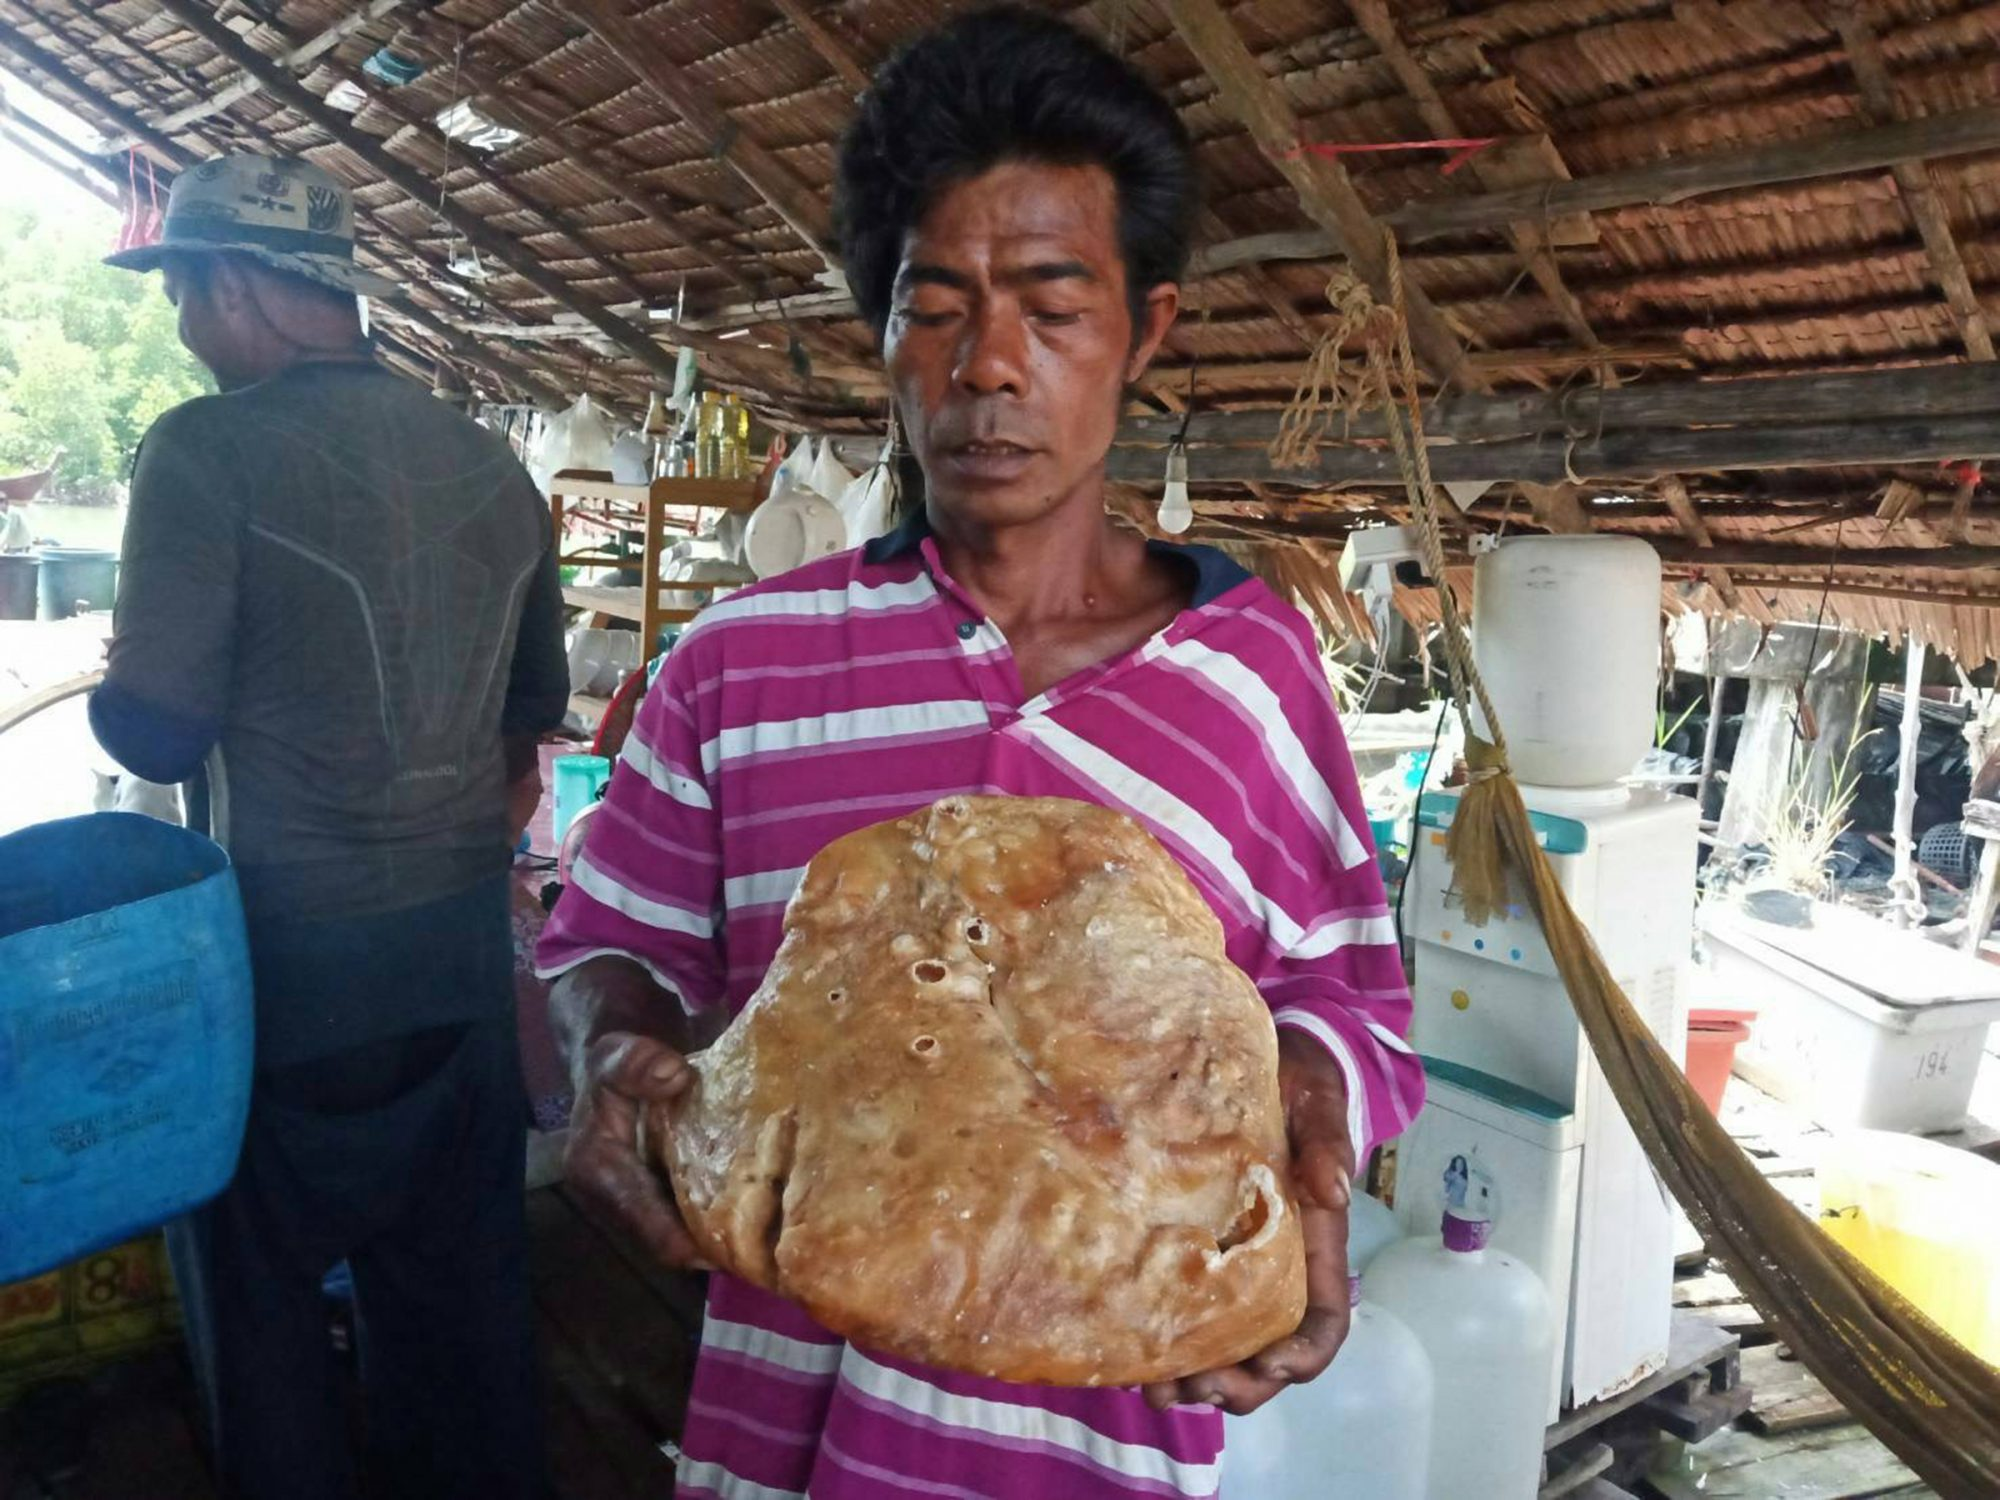 A penniless rubbish collector is hoping a lump of yellow wax he found on a beach is valuable whale vomit. Somsak Boonrith, 45, stumbled on the yellow chunk while he was sifting through trash on Tarutao island is Satun, southern Thailand last Sunday (10/11) afternoon.